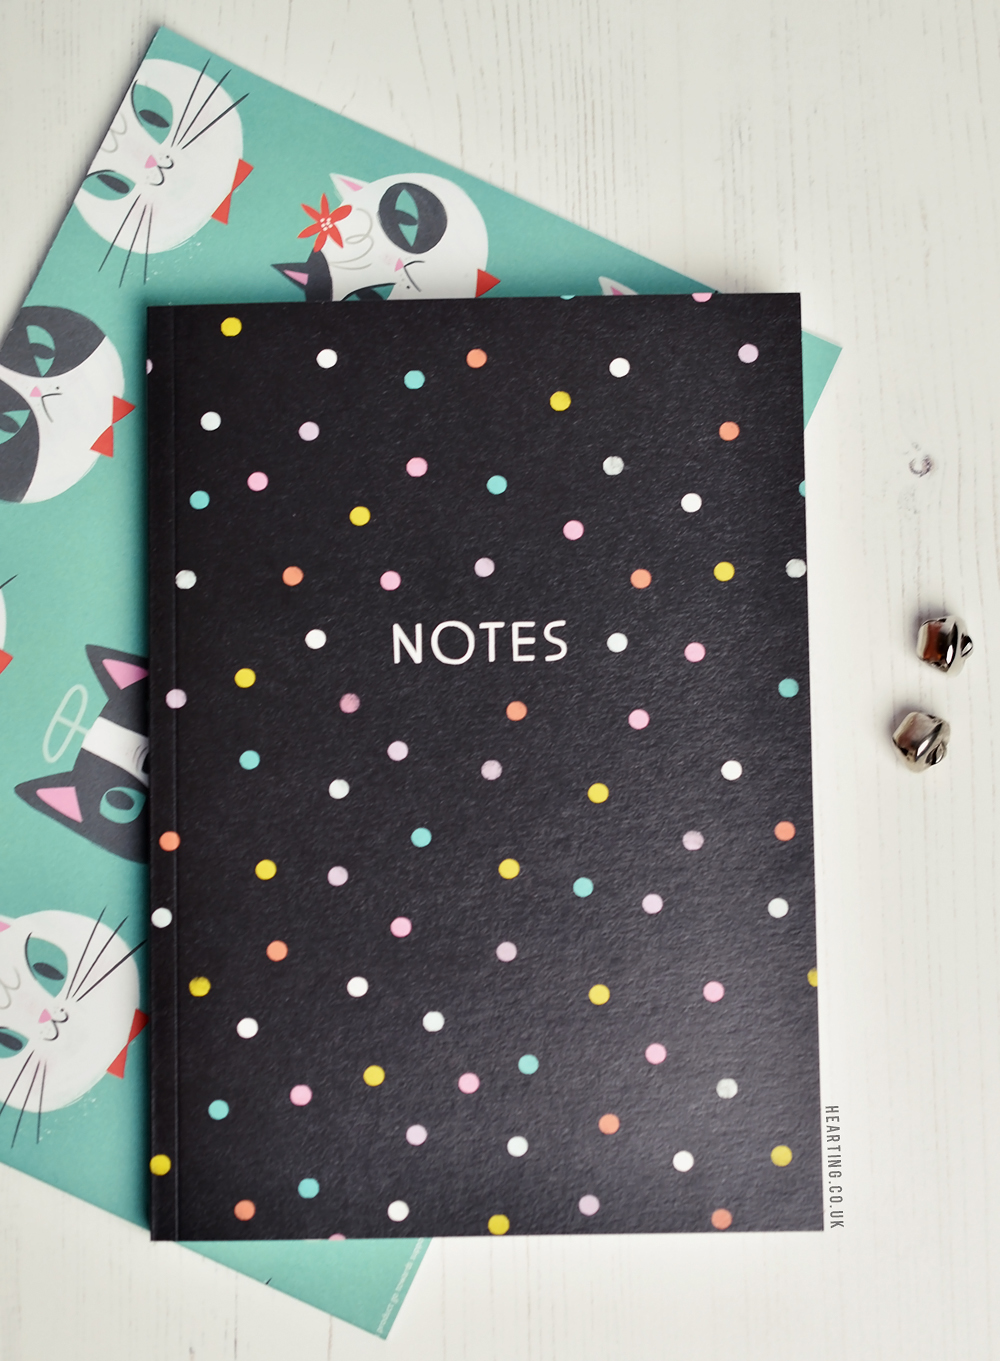 Papergang #21 | Unboxing and first impressions of the November Papergang x Battersea Home Stationery Subscription Box with a Christmas cat and dog theme